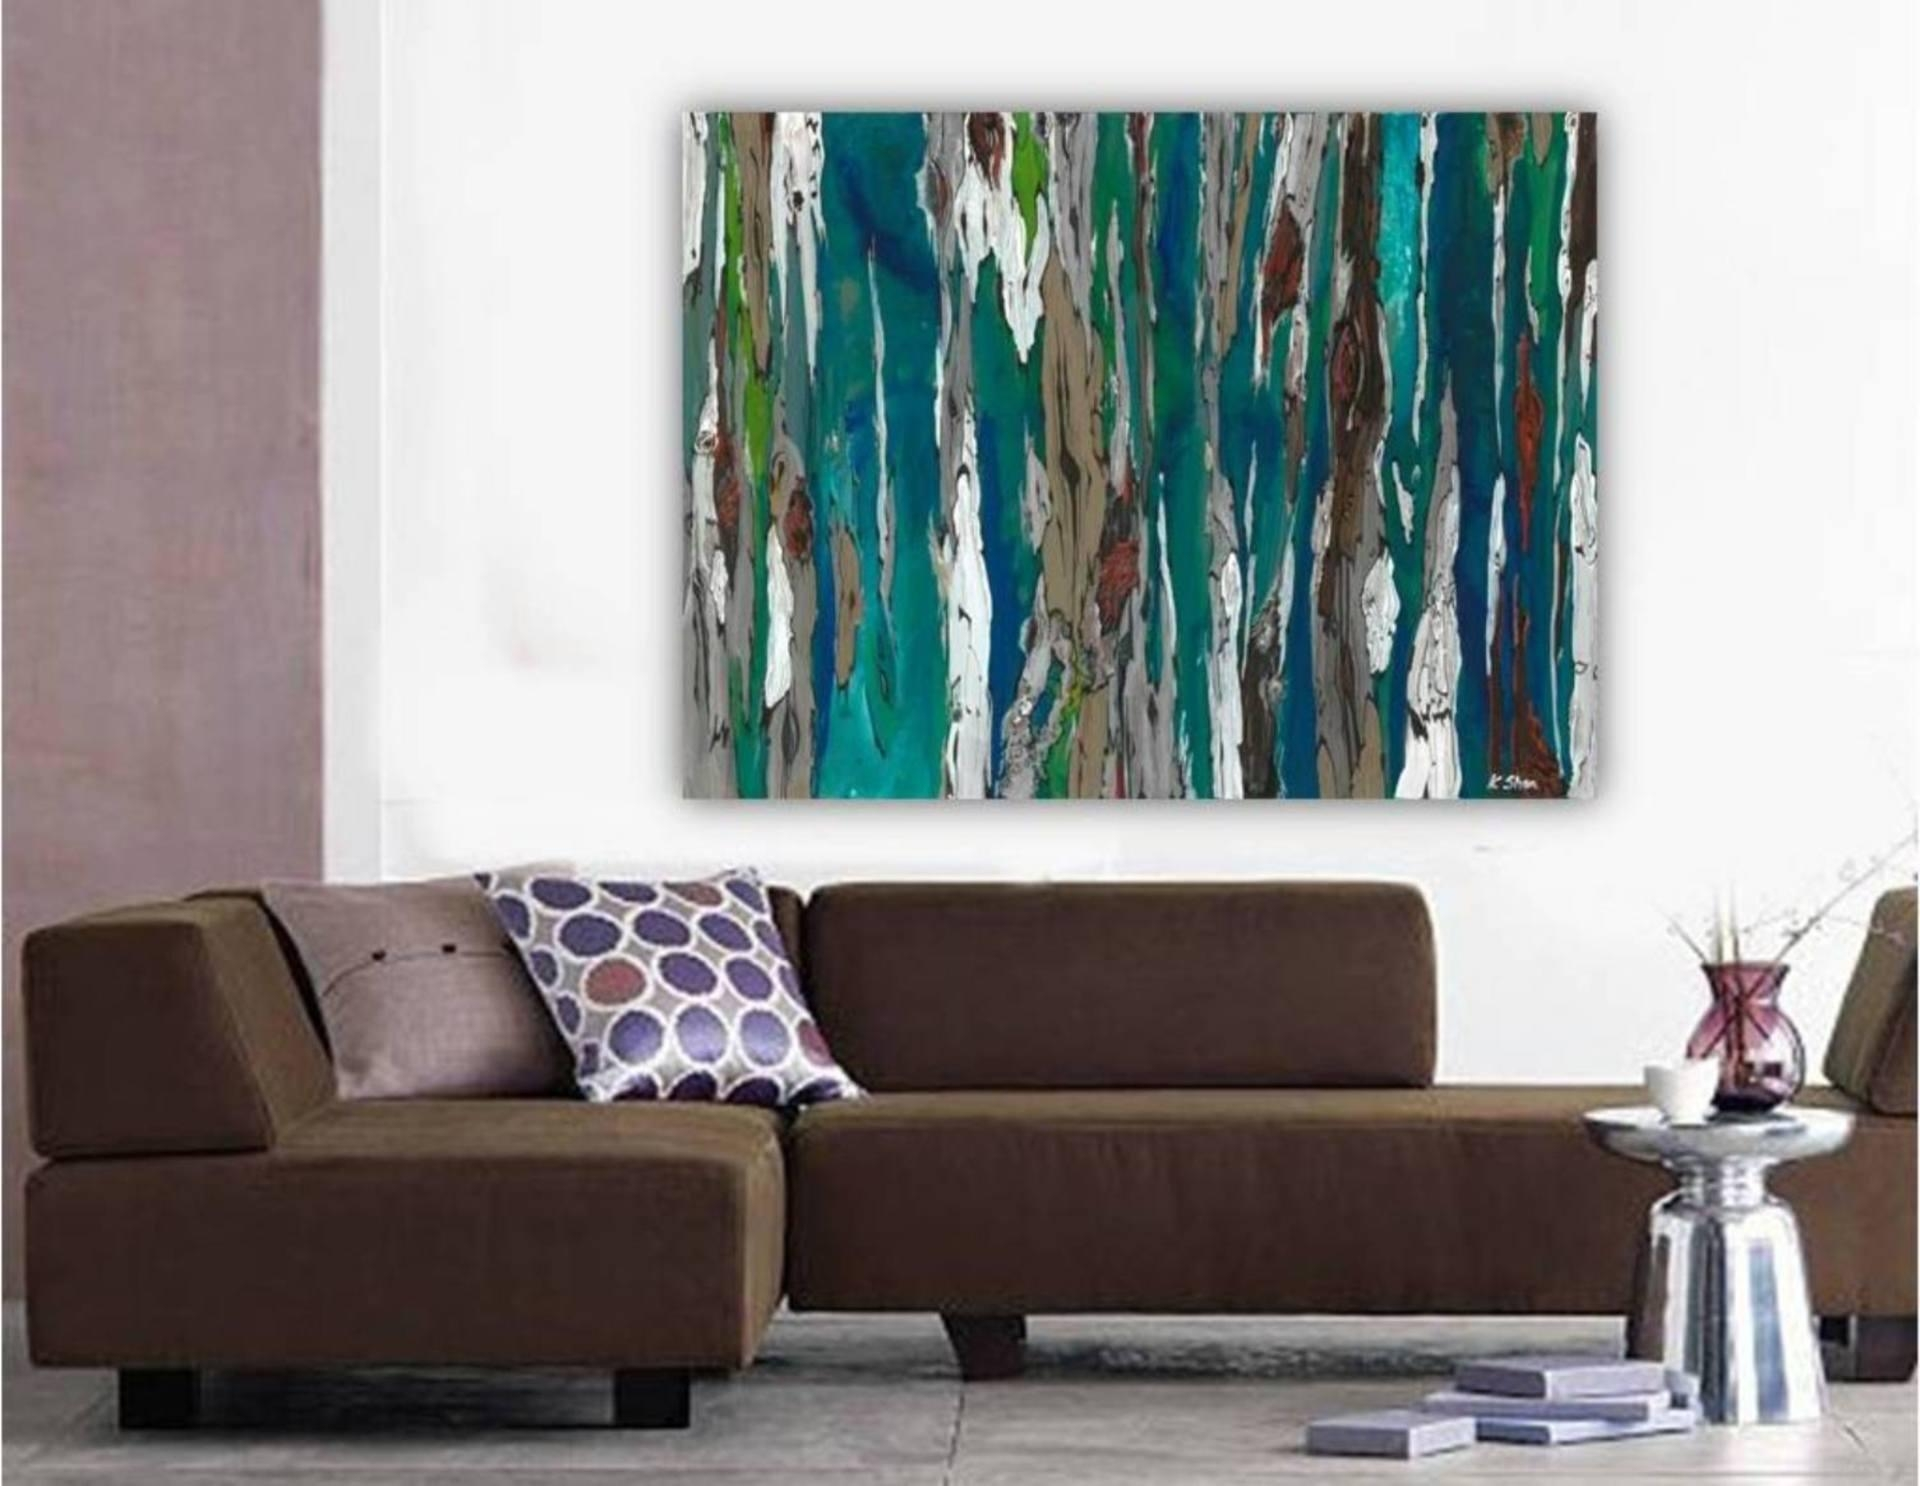 Saatchi Art: Large Contemporary Original Abstract Tree Landscape Pertaining To Blue And Brown Wall Art (View 13 of 20)